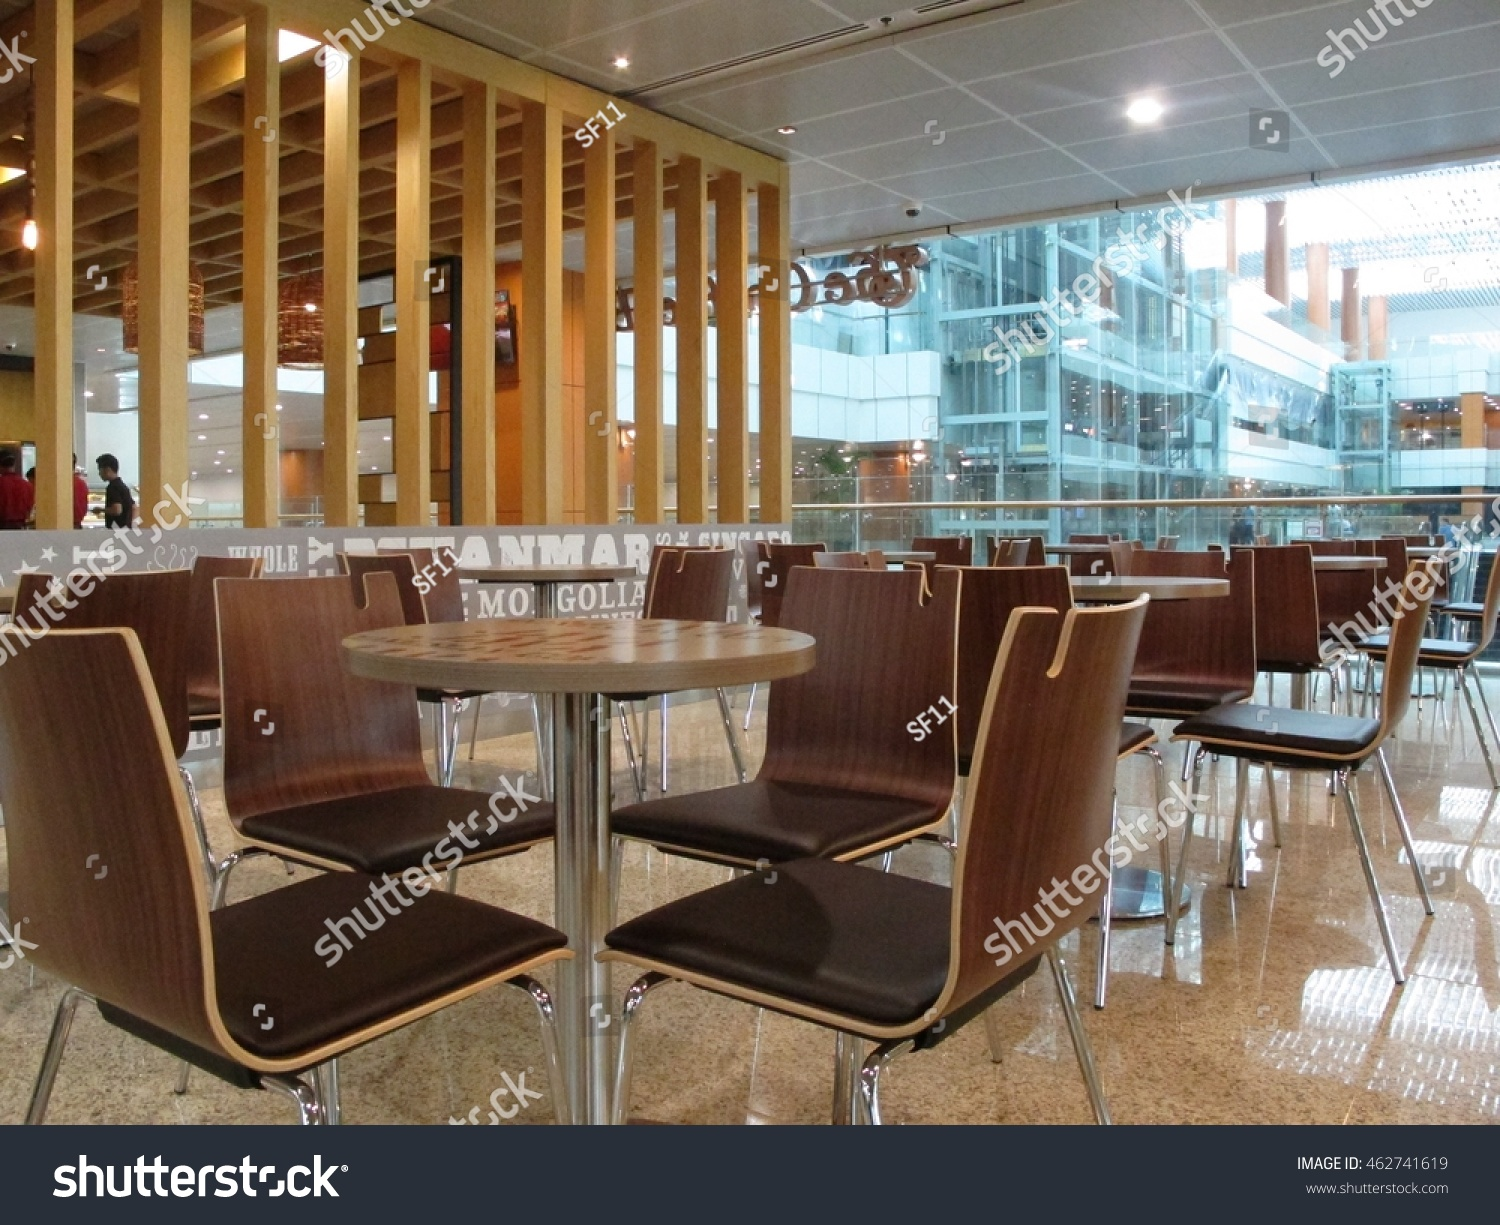 Yangon myanmar july 26 2016 modern interior design of the coffee bean tea leaf at yangon international airport it is the primary and travel